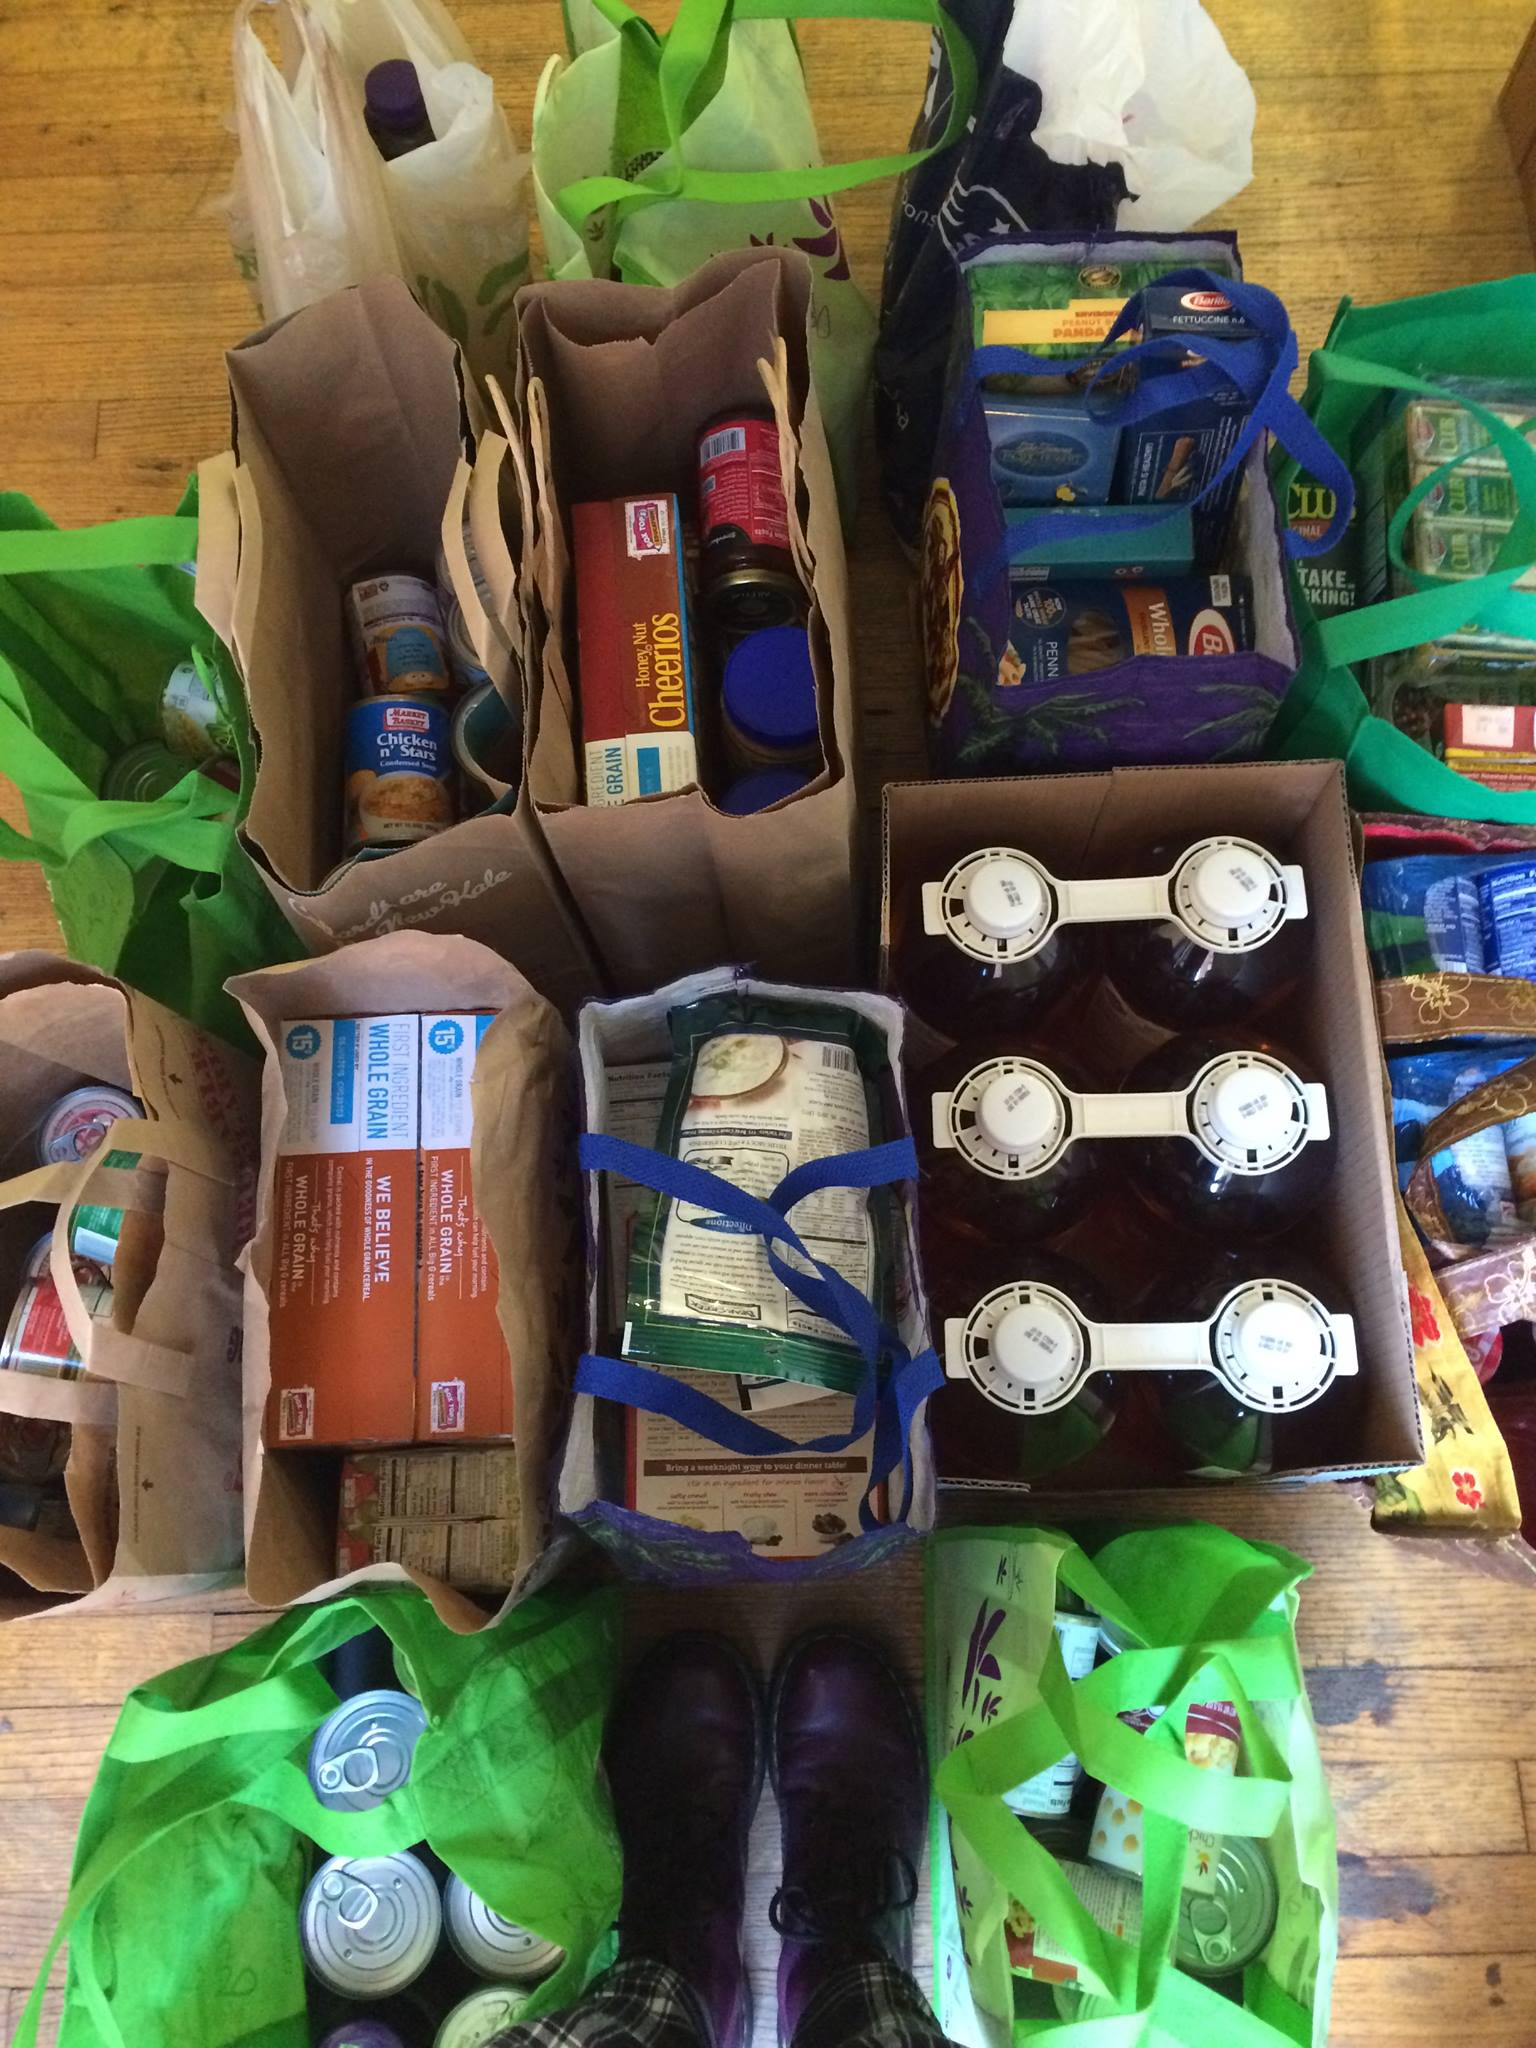 Year to date: Over 1000 lbs. of food donated to the Natick Service Council